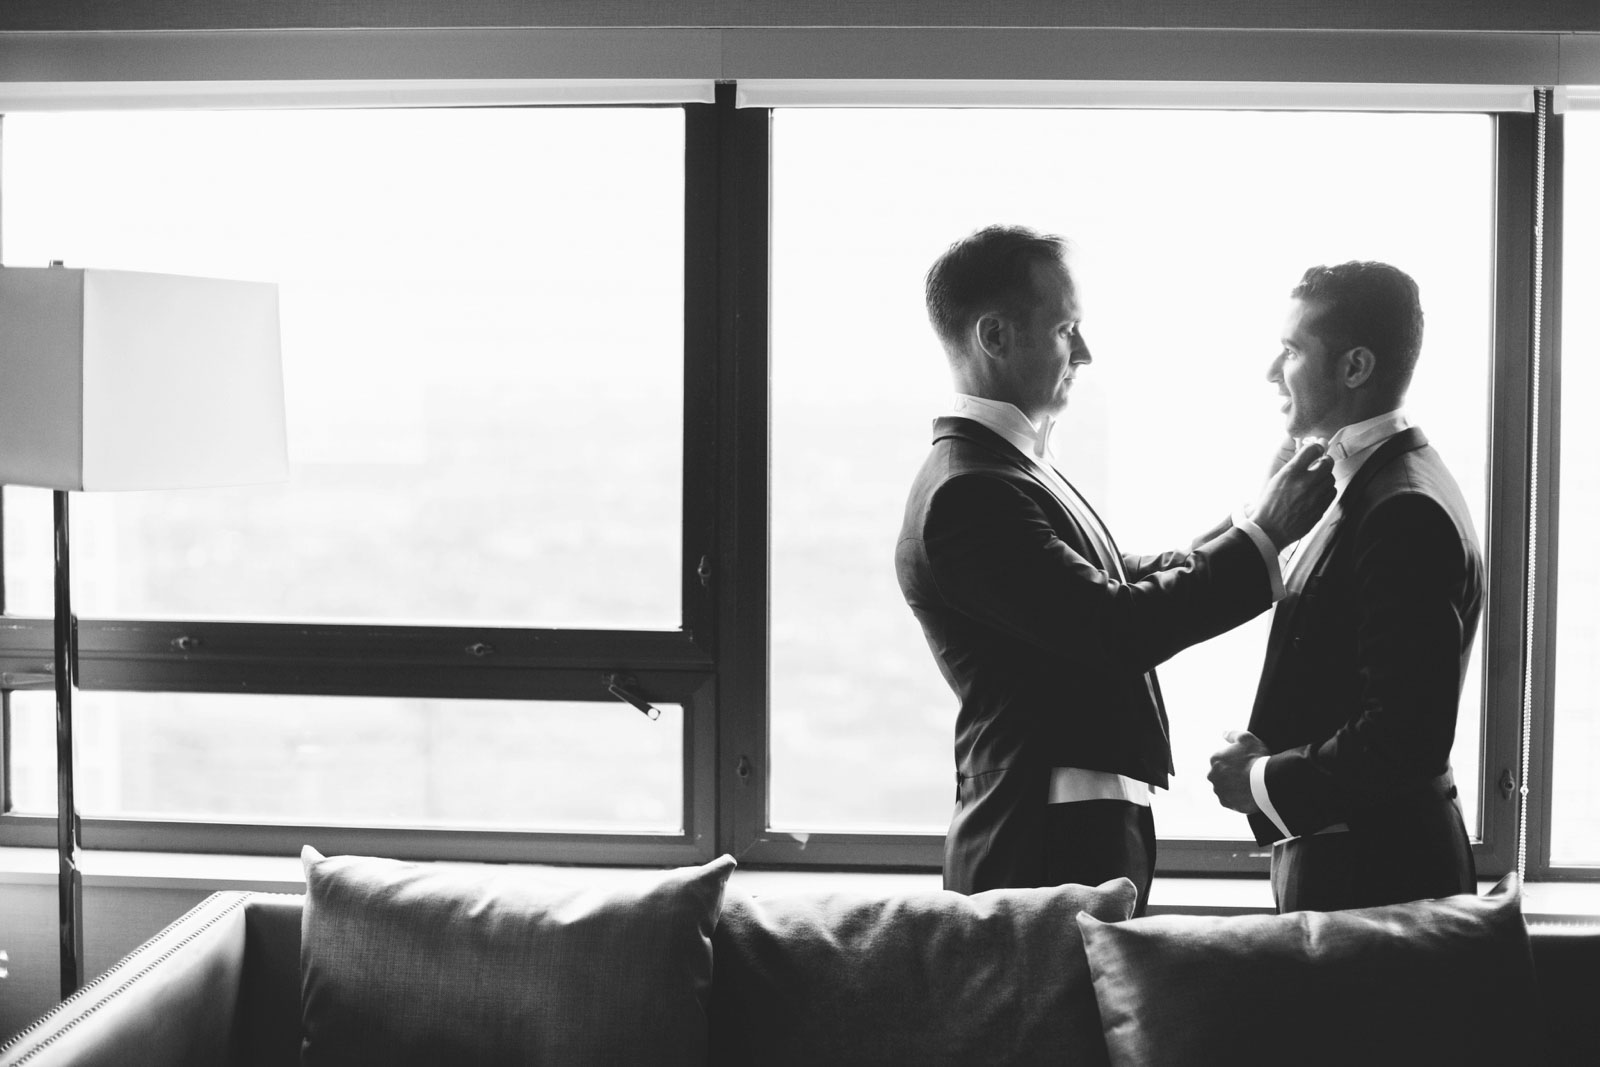 Black and white shot of grooms helping each other with their bow ties in front of the window